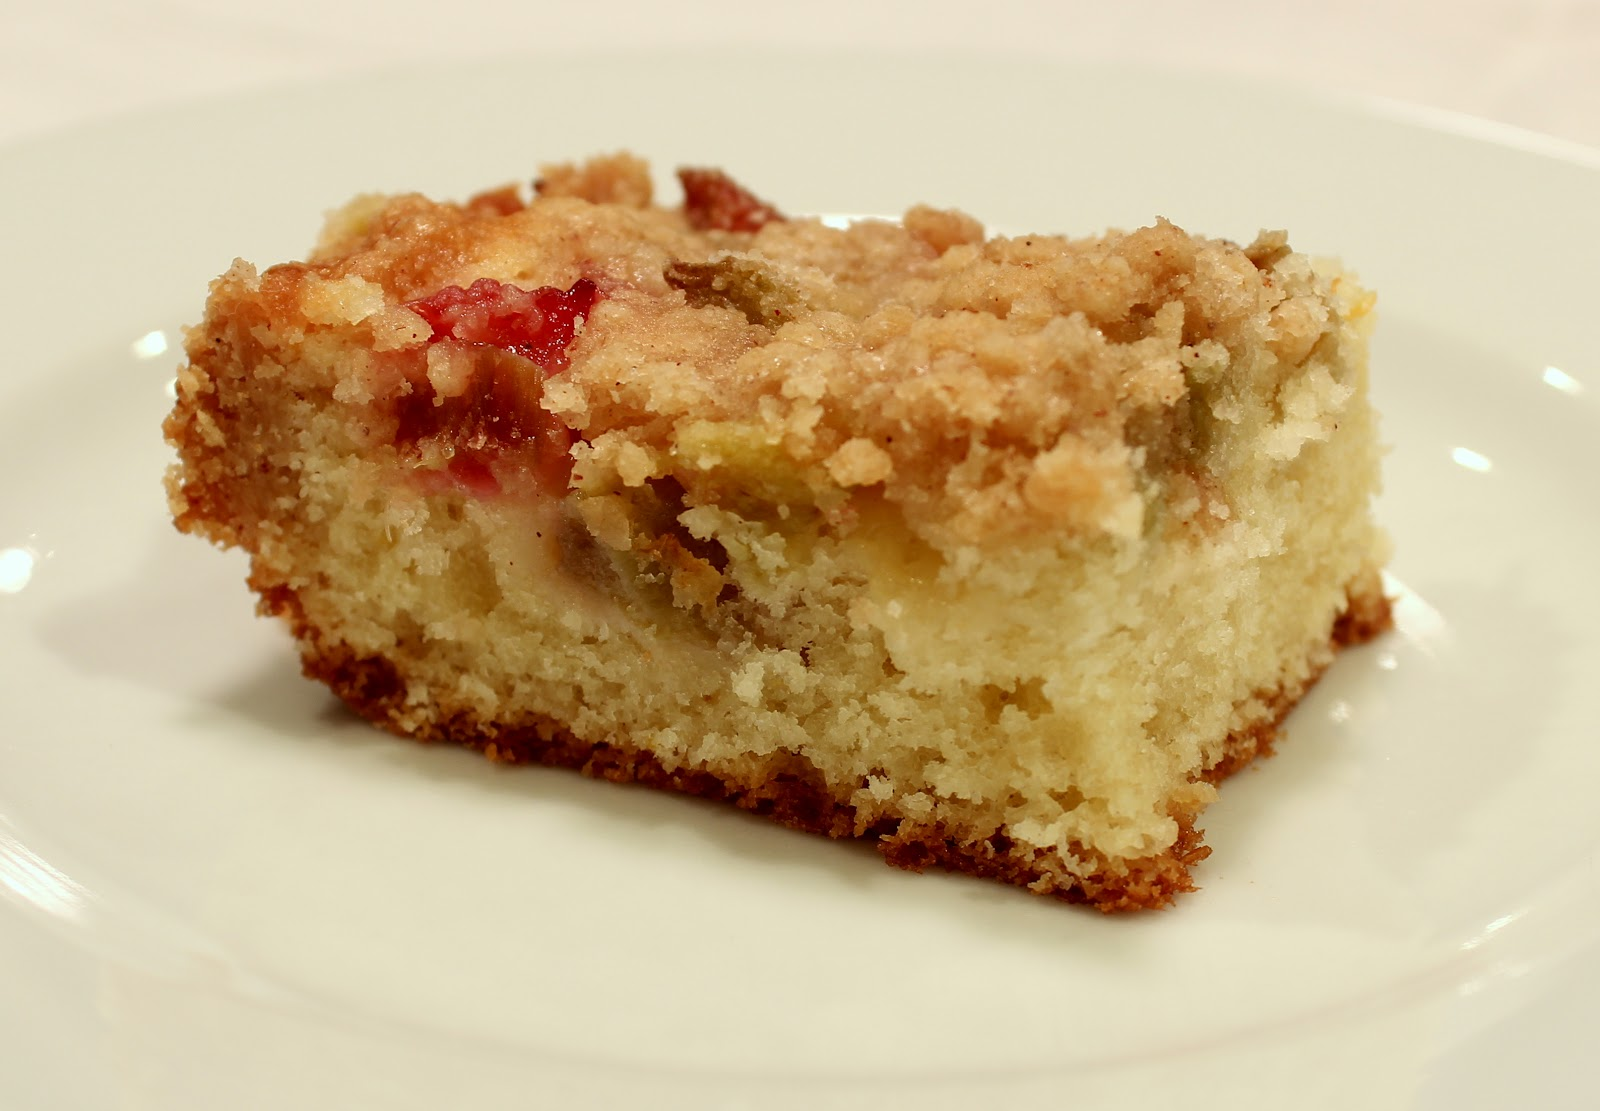 Dinner Delish: Lemon Rhubarb Snack Cake